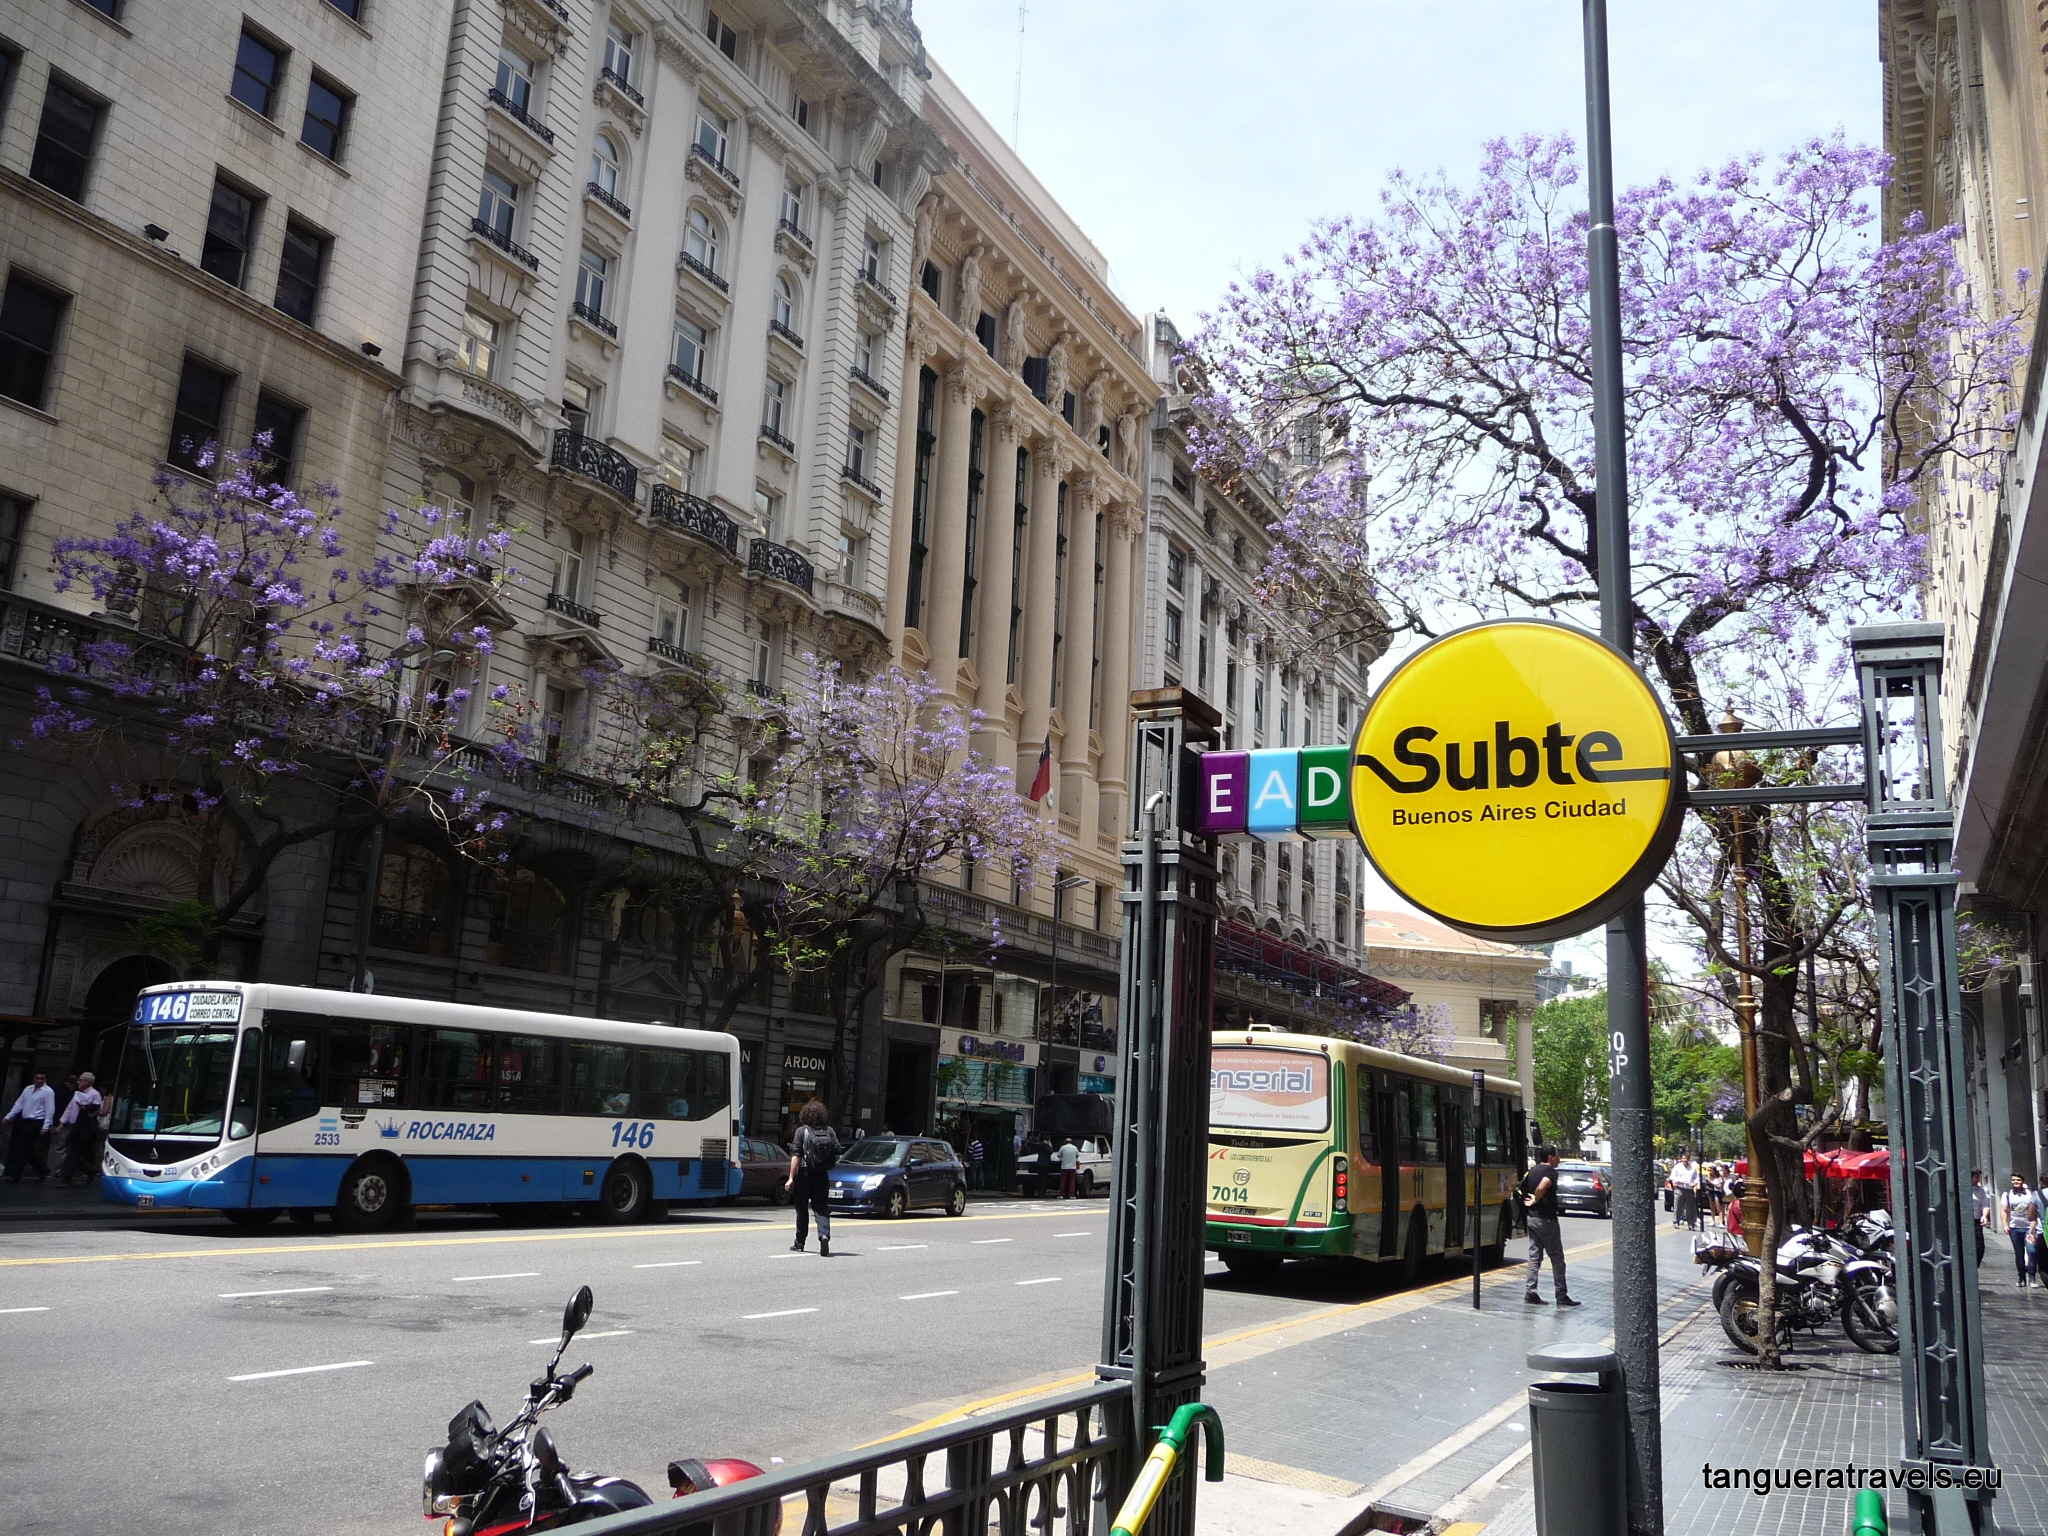 Subte station with Jacaranda, Buenos Aires